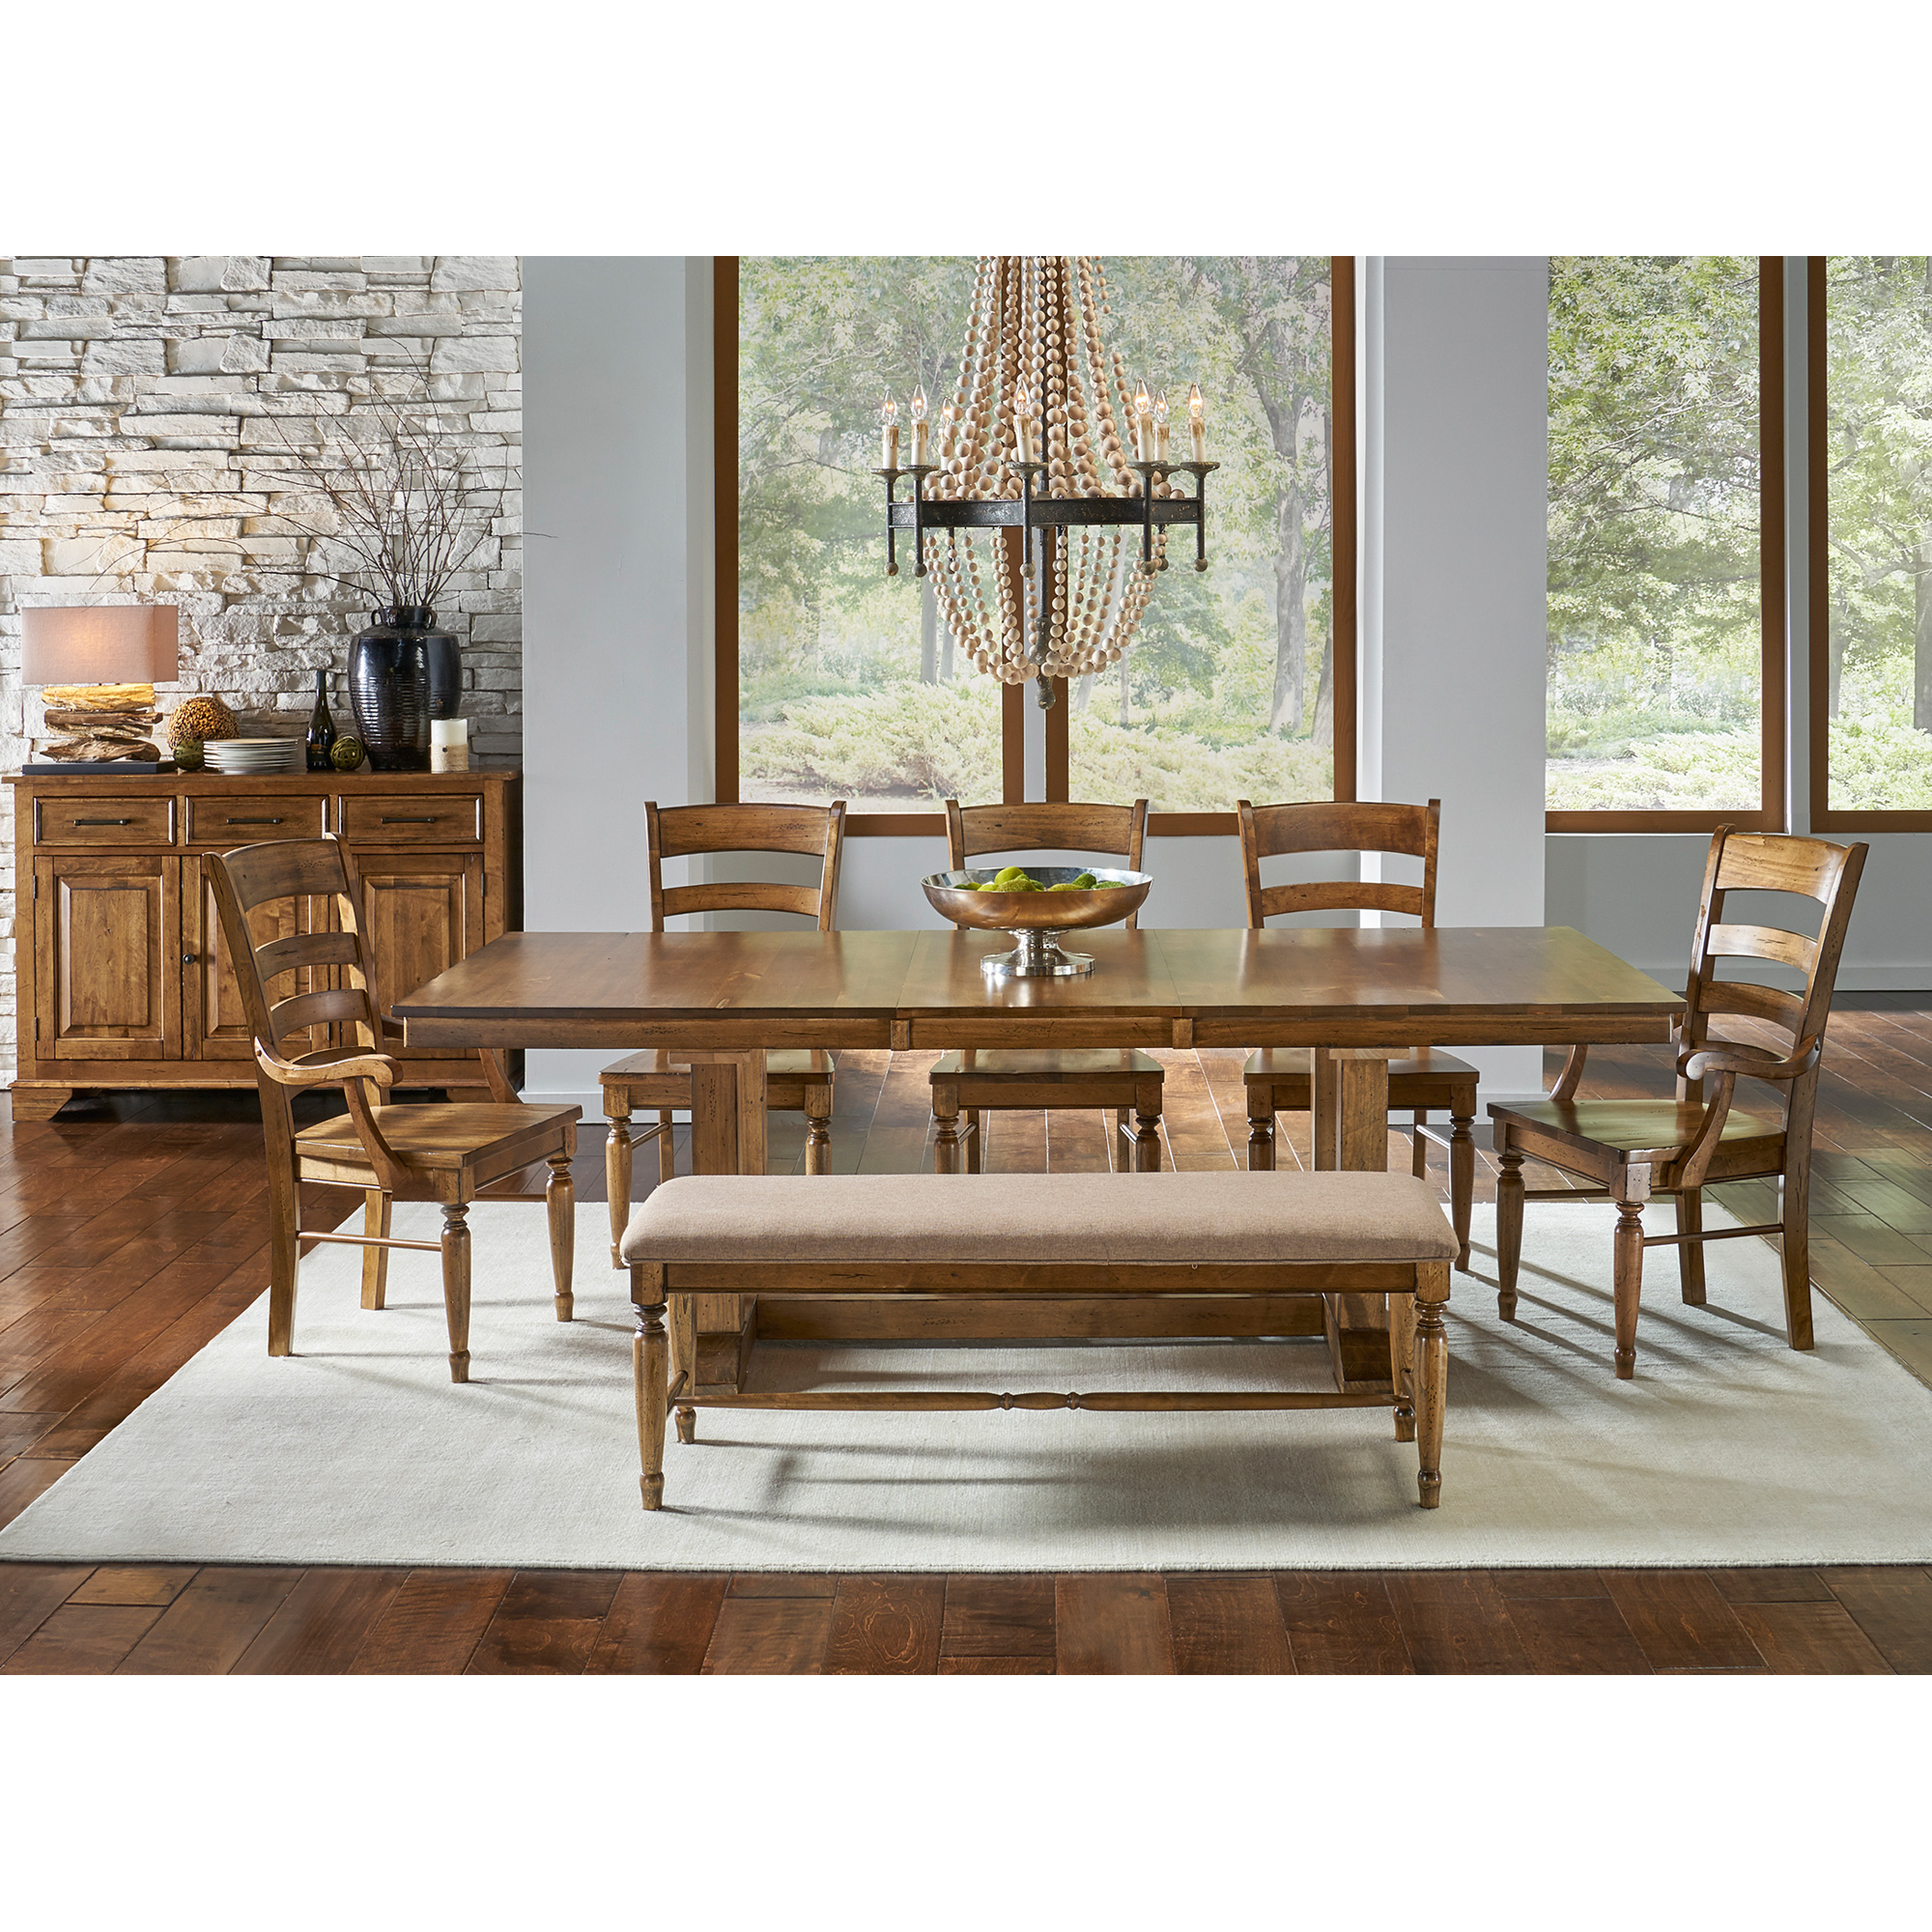 America | Bennett Smokey Quartz 5 Piece Trestle Dining Set